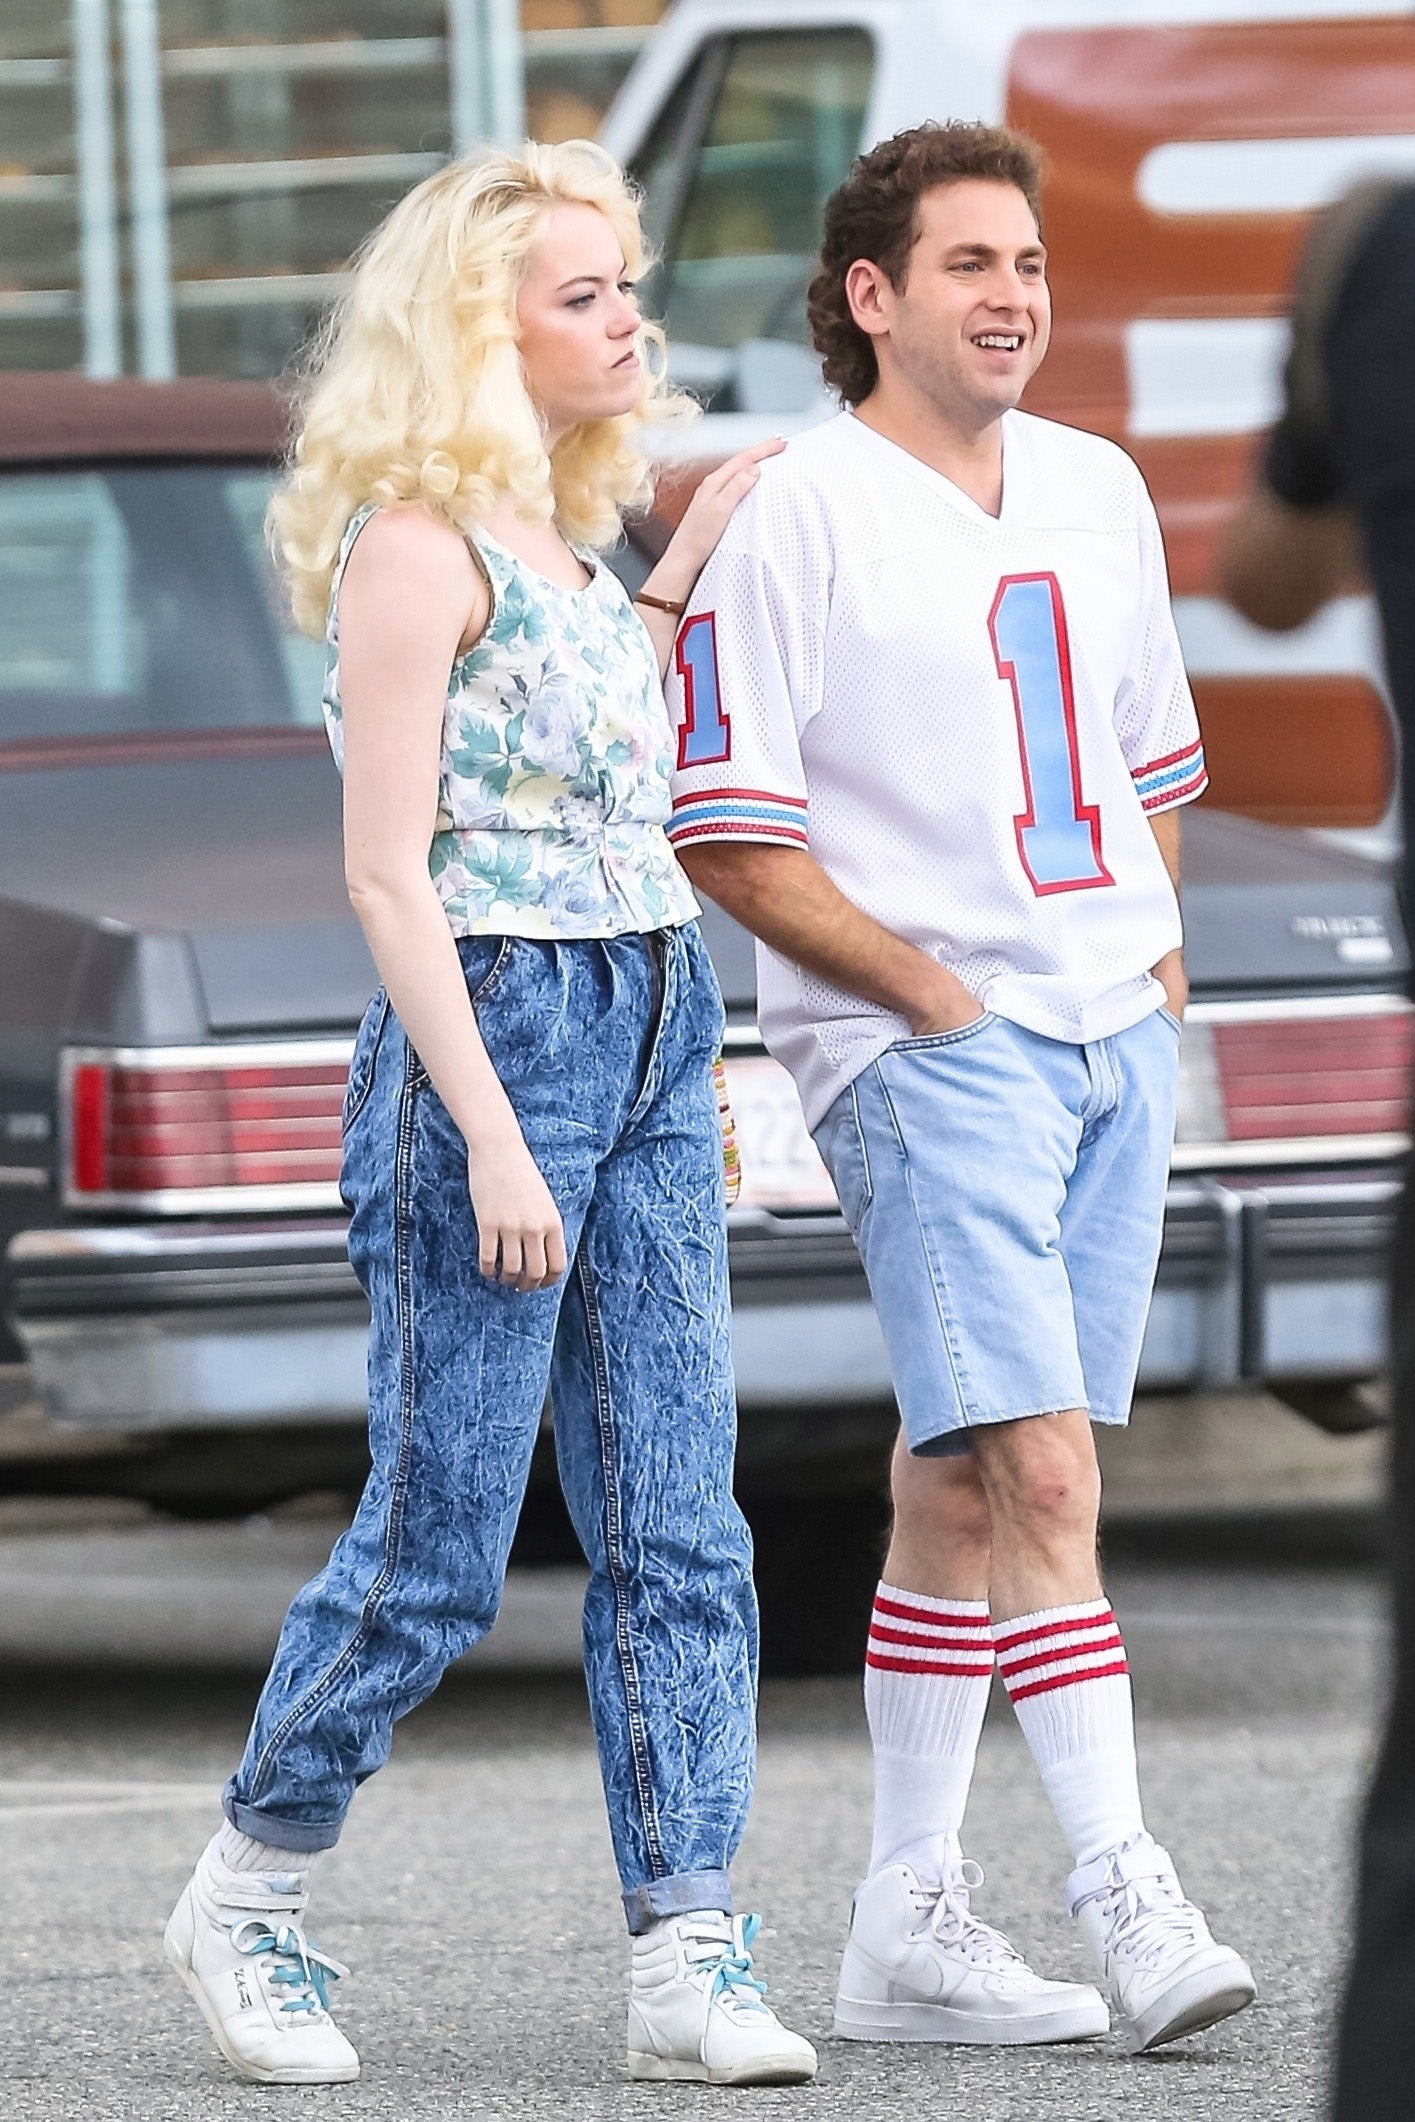 Actors Emma Stone and Jonah Hill take it back to the 80's while filming their upcoming Netflix series 'Maniac' in New York City. A slimmed down Jonah was sporting a sweet mullet on set.